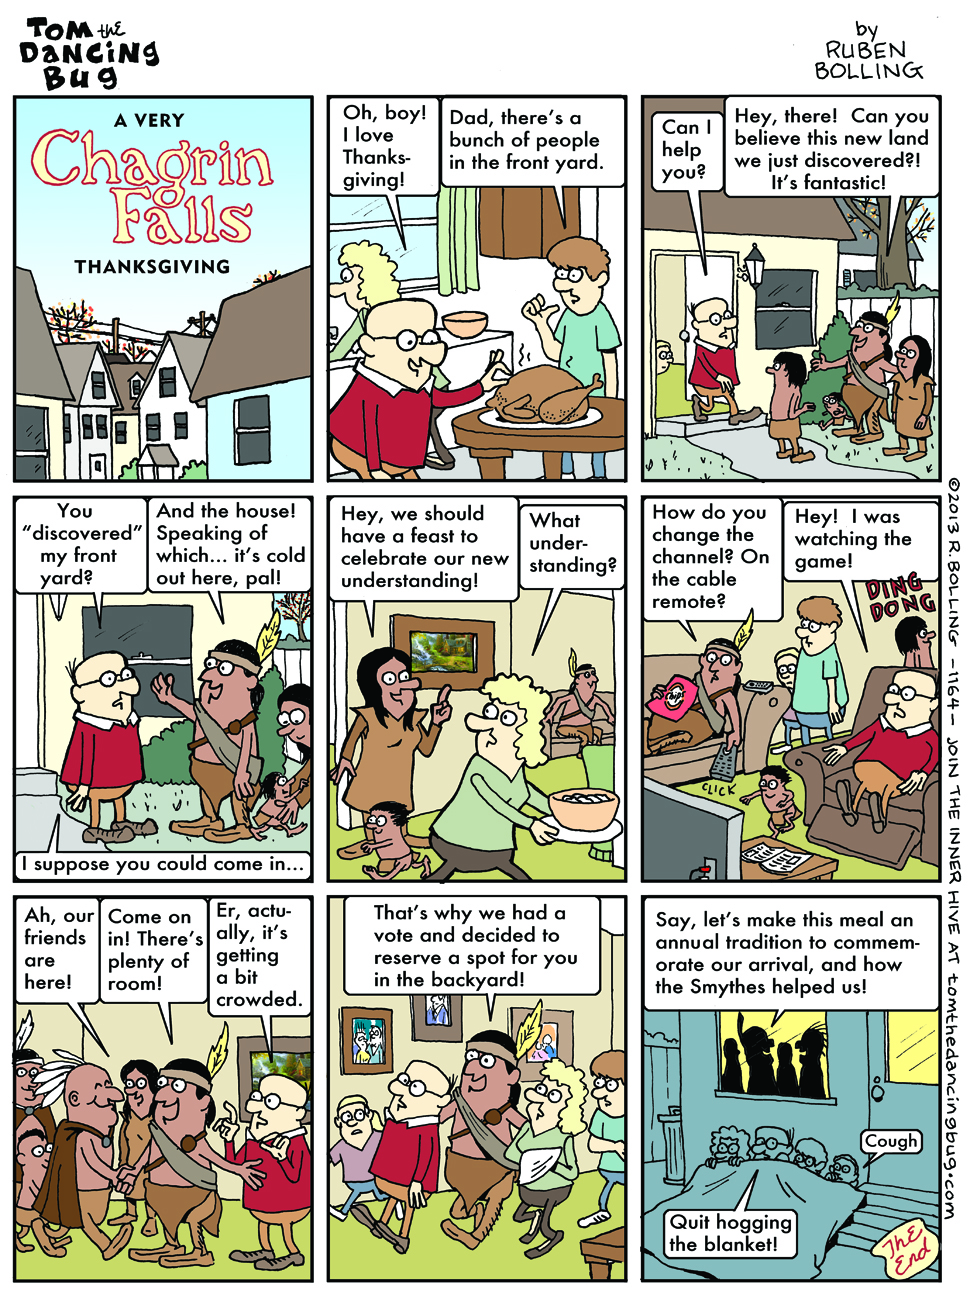 http://media.boingboing.net/wp-content/uploads/2013/11/1164cbCOMIC-chagrin-falls-thanksgiving.jpg